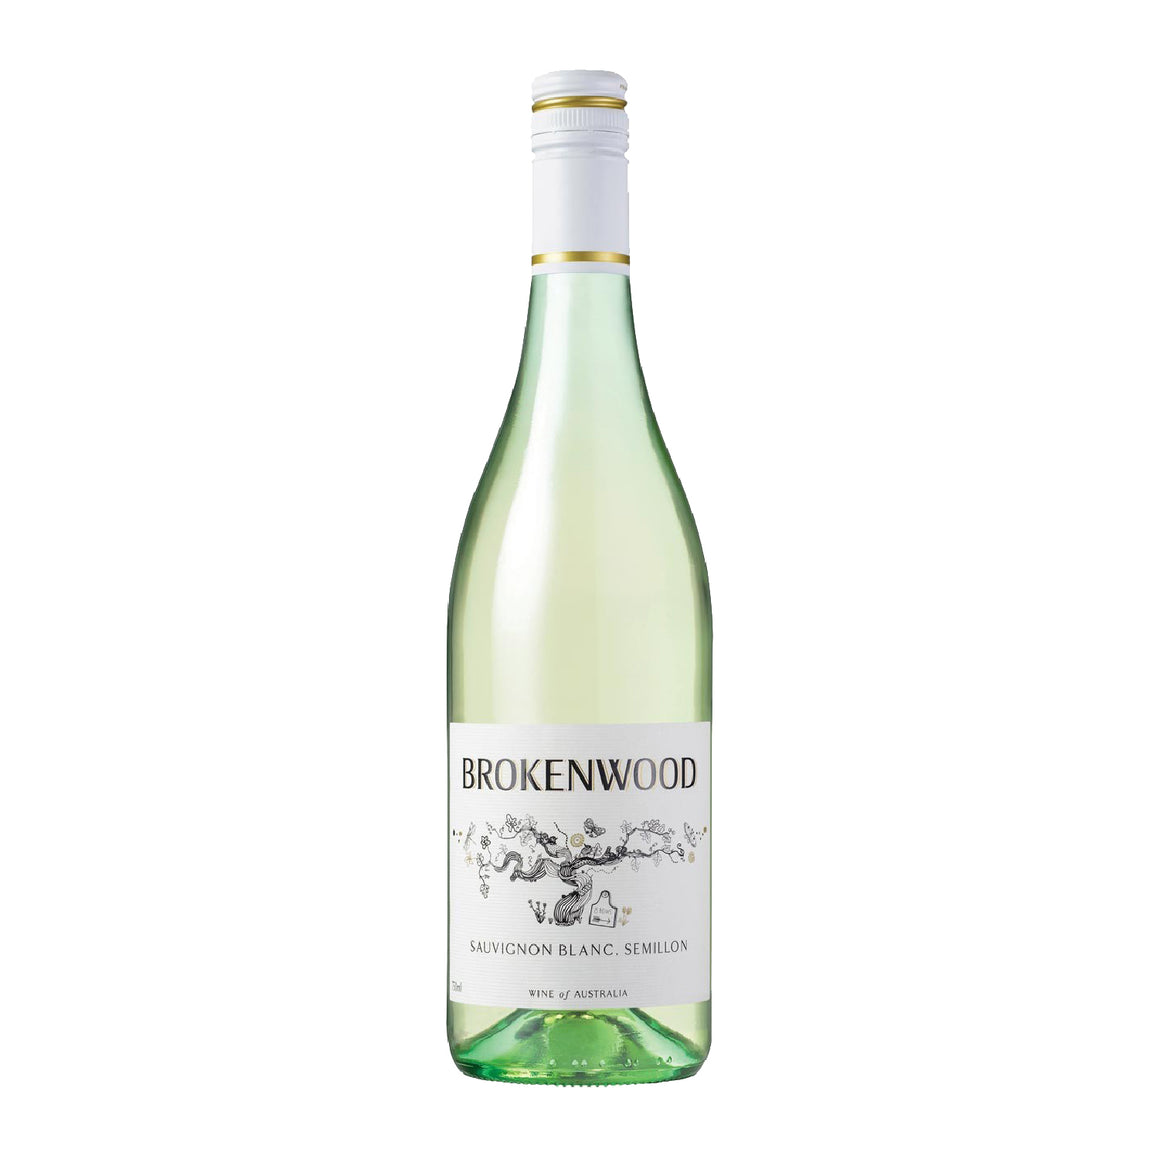 BROKENWOOD 8 ROW SAUVIGNON BLANC SEMILLON 2019